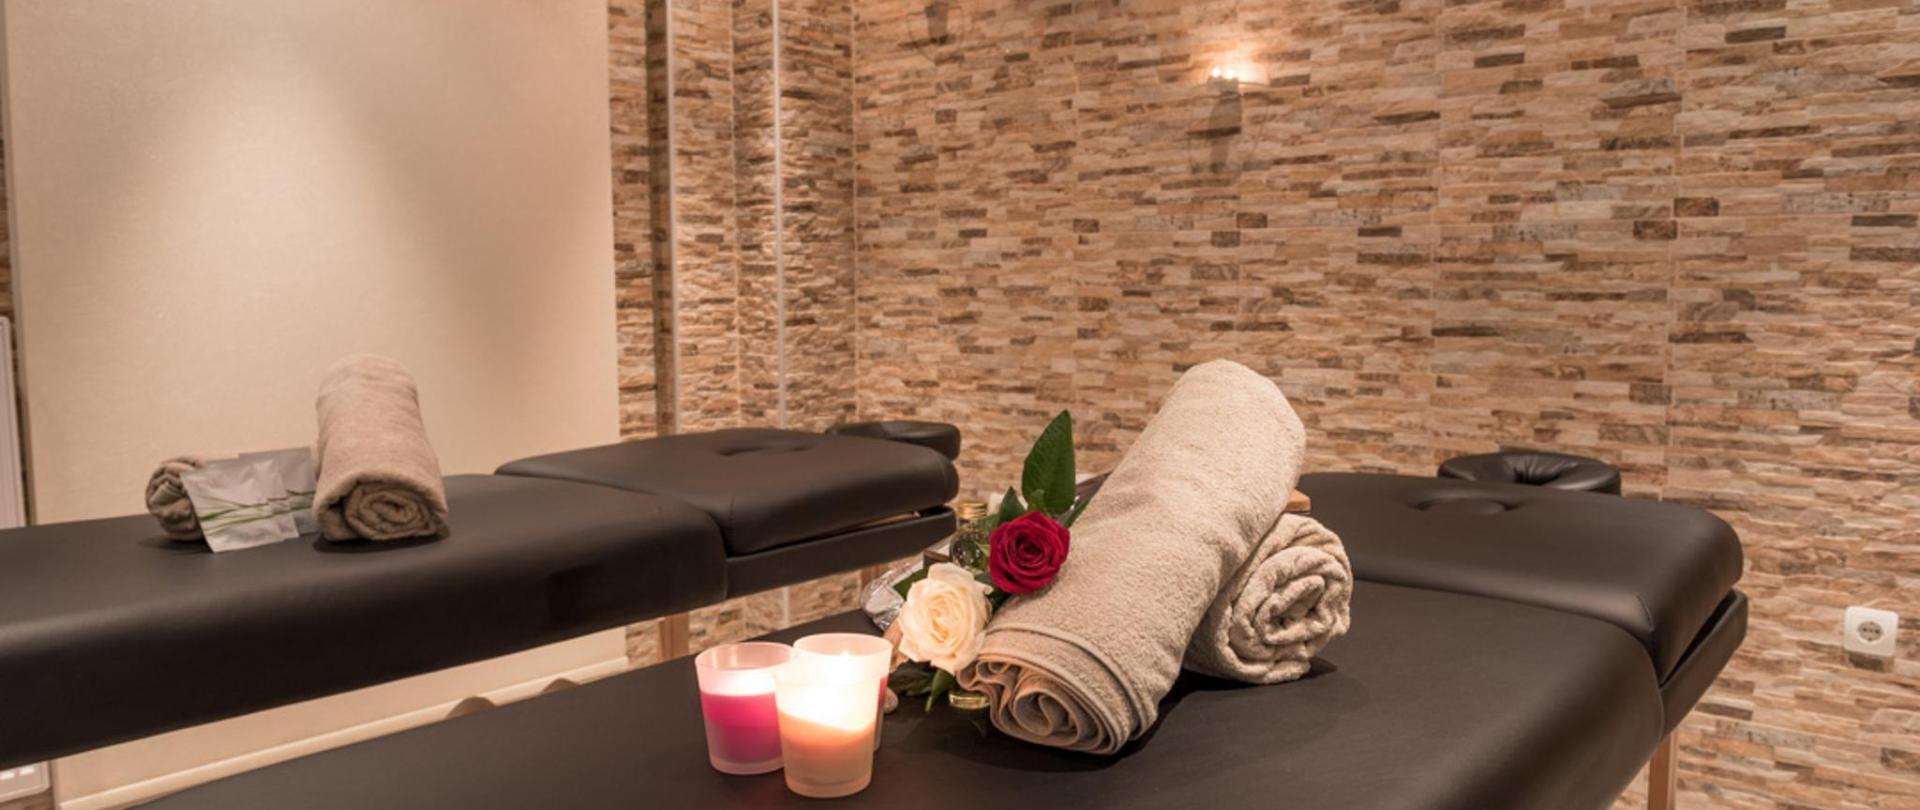 luxury-living-spa-massage-wellness-thessaloniki-tsimiski-lifestyle-01.jpg